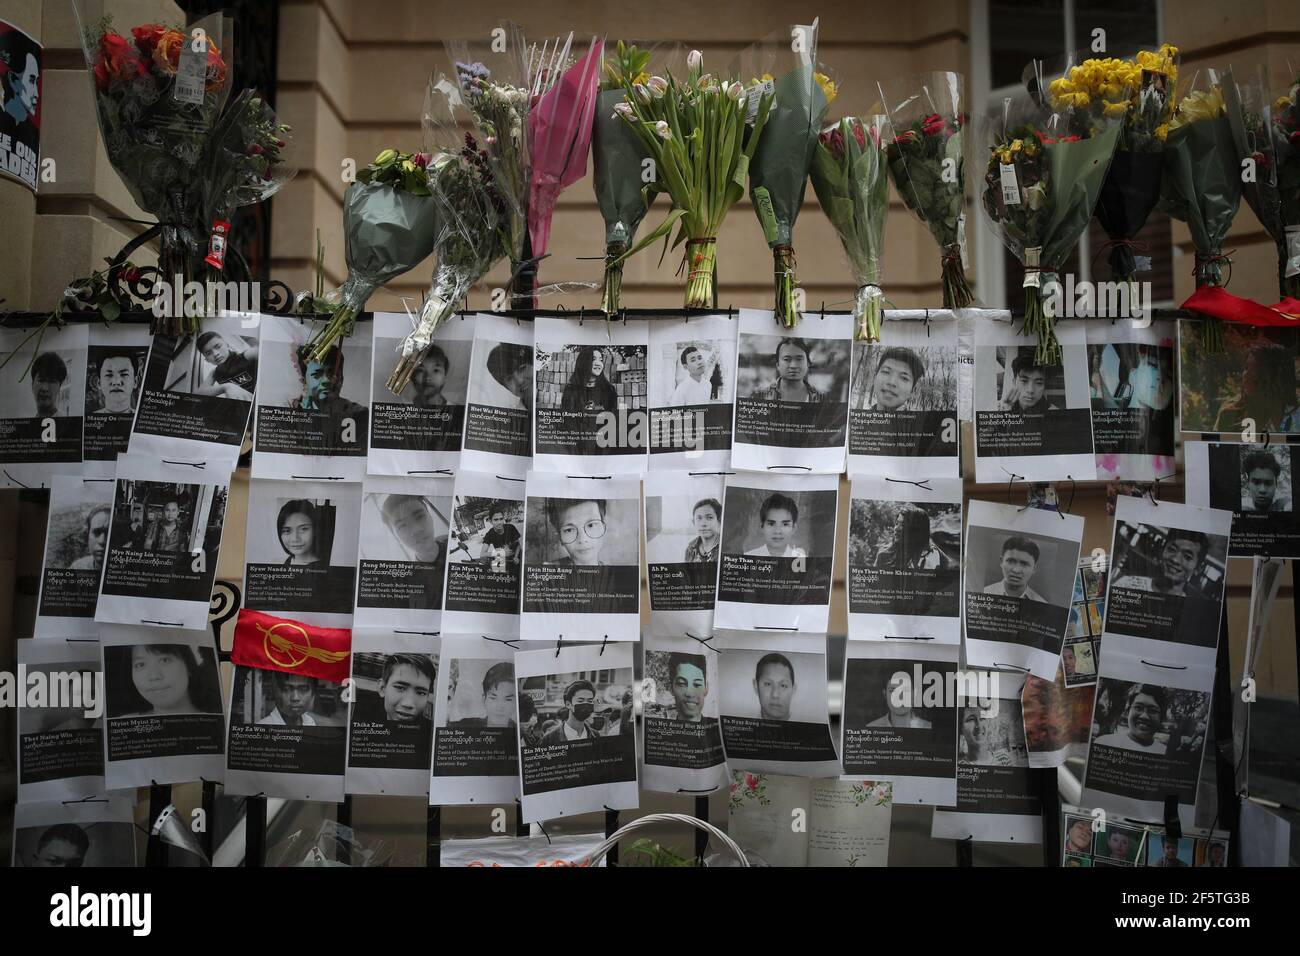 Tribute and protest signs outside the Embassy of Burma in London against the February 1 coup which ousted Aung San Suu KyiÕs elected government. Picture date: Sunday March 28, 2021. Stock Photo